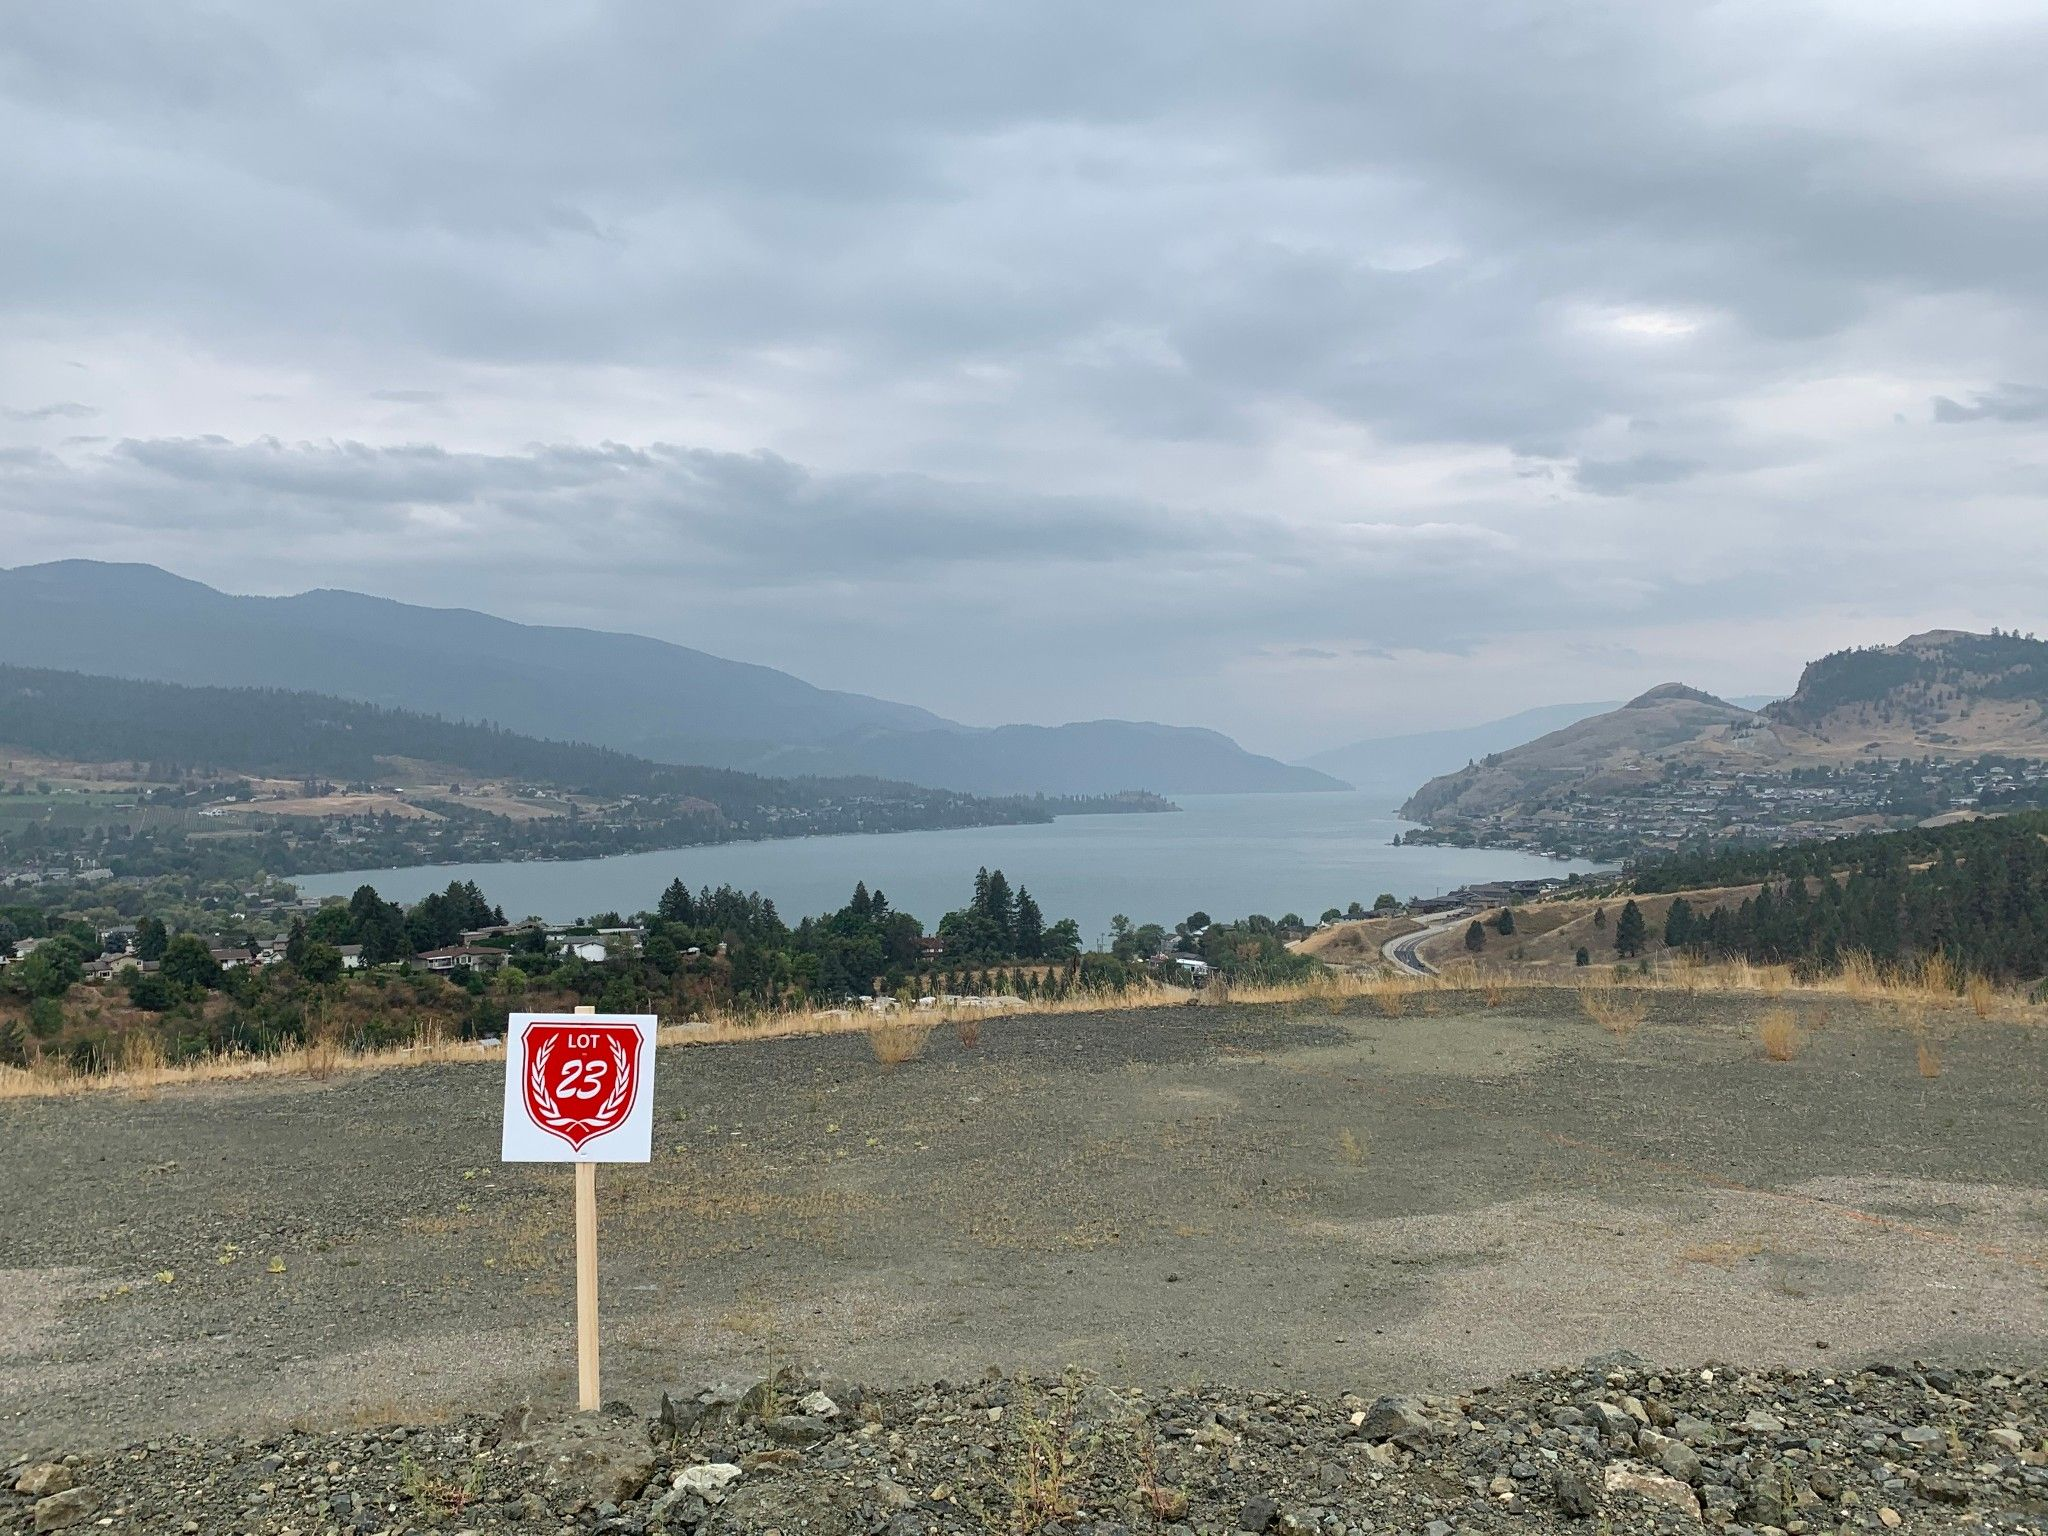 Main Photo: Lot 23 900 Mt Griffin Road in Vernon: Middlton Mtn Vacant Land for sale (North Okanagan)  : MLS®# 10215265